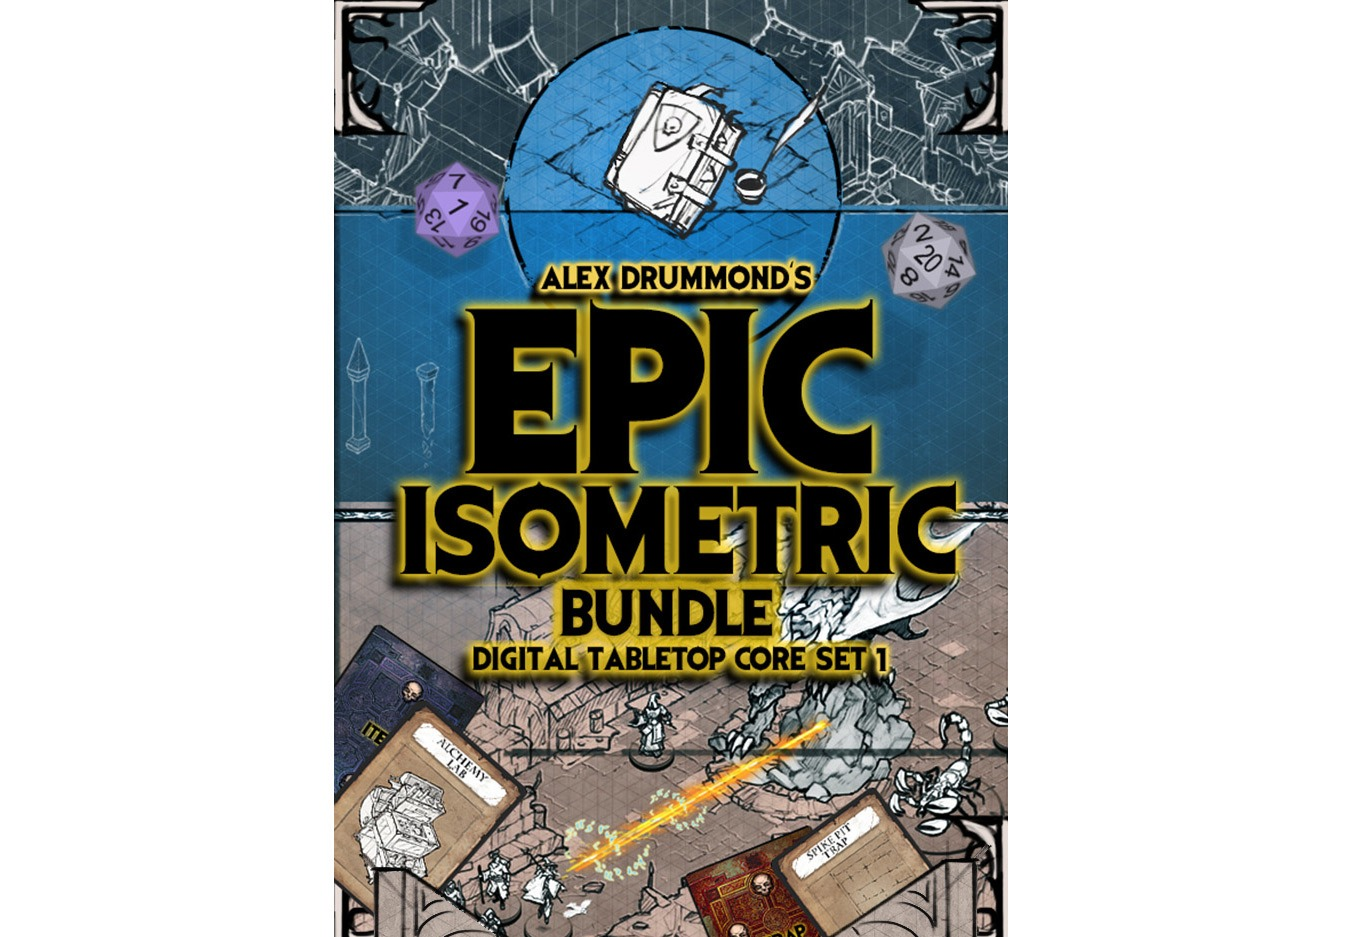 EpicIso_preview_corebundle_1.jpg